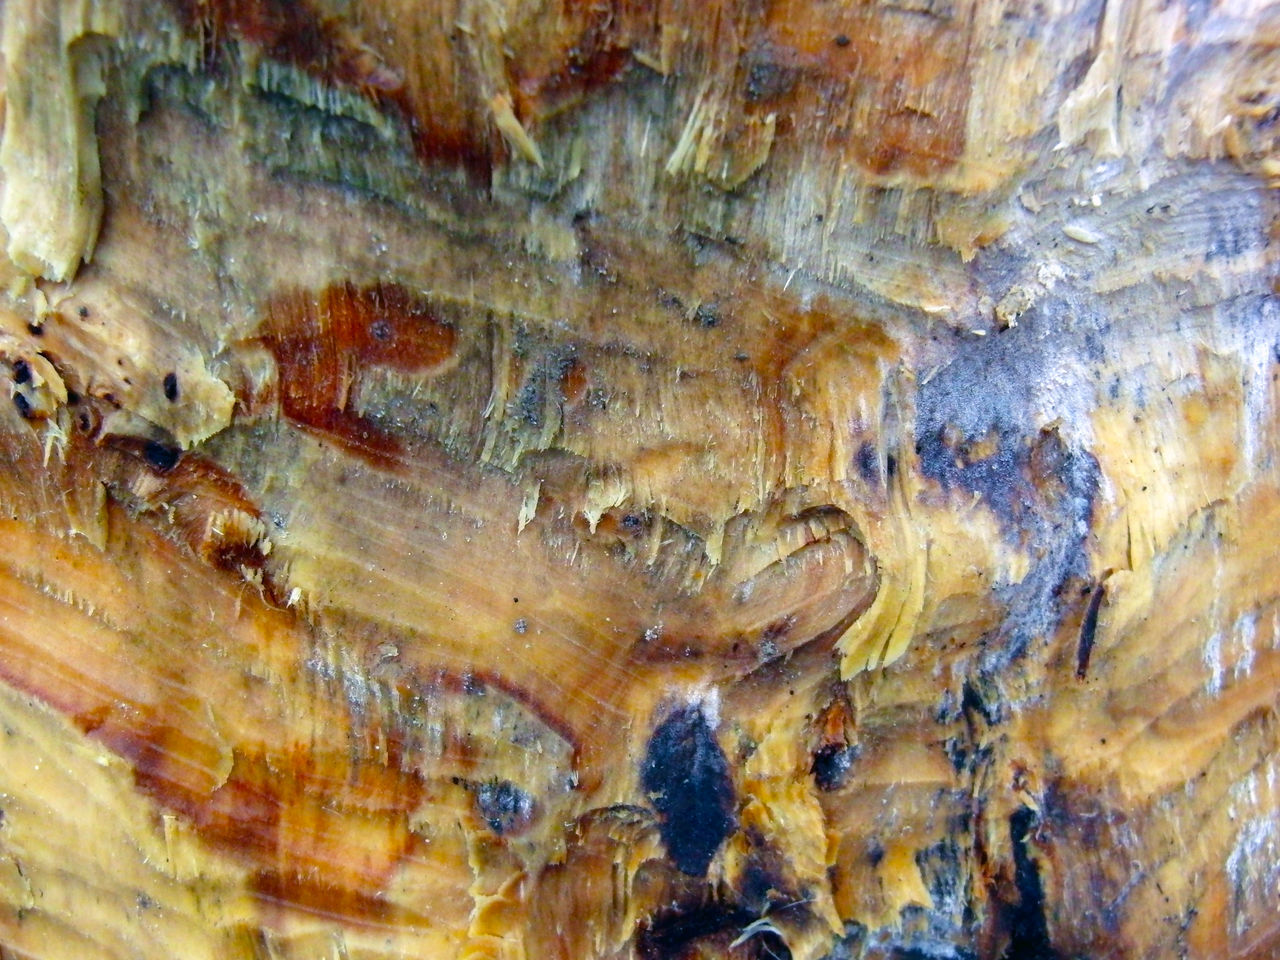 textured, nature, rough, pattern, close-up, rock - object, full frame, no people, backgrounds, outdoors, day, animal themes